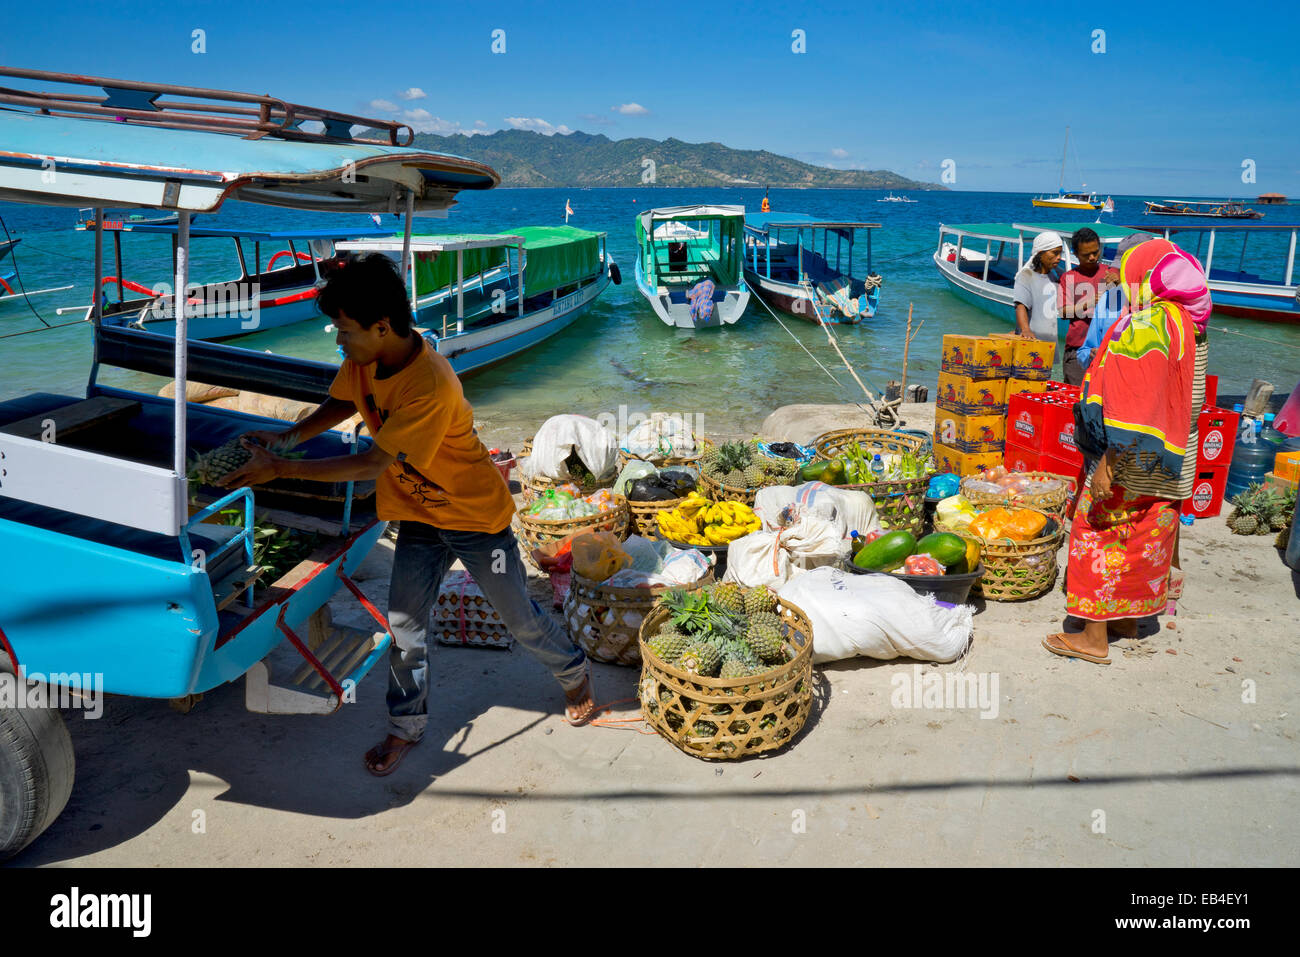 fruit and vegetables sellers at the harbor of Gili Air - Stock Image